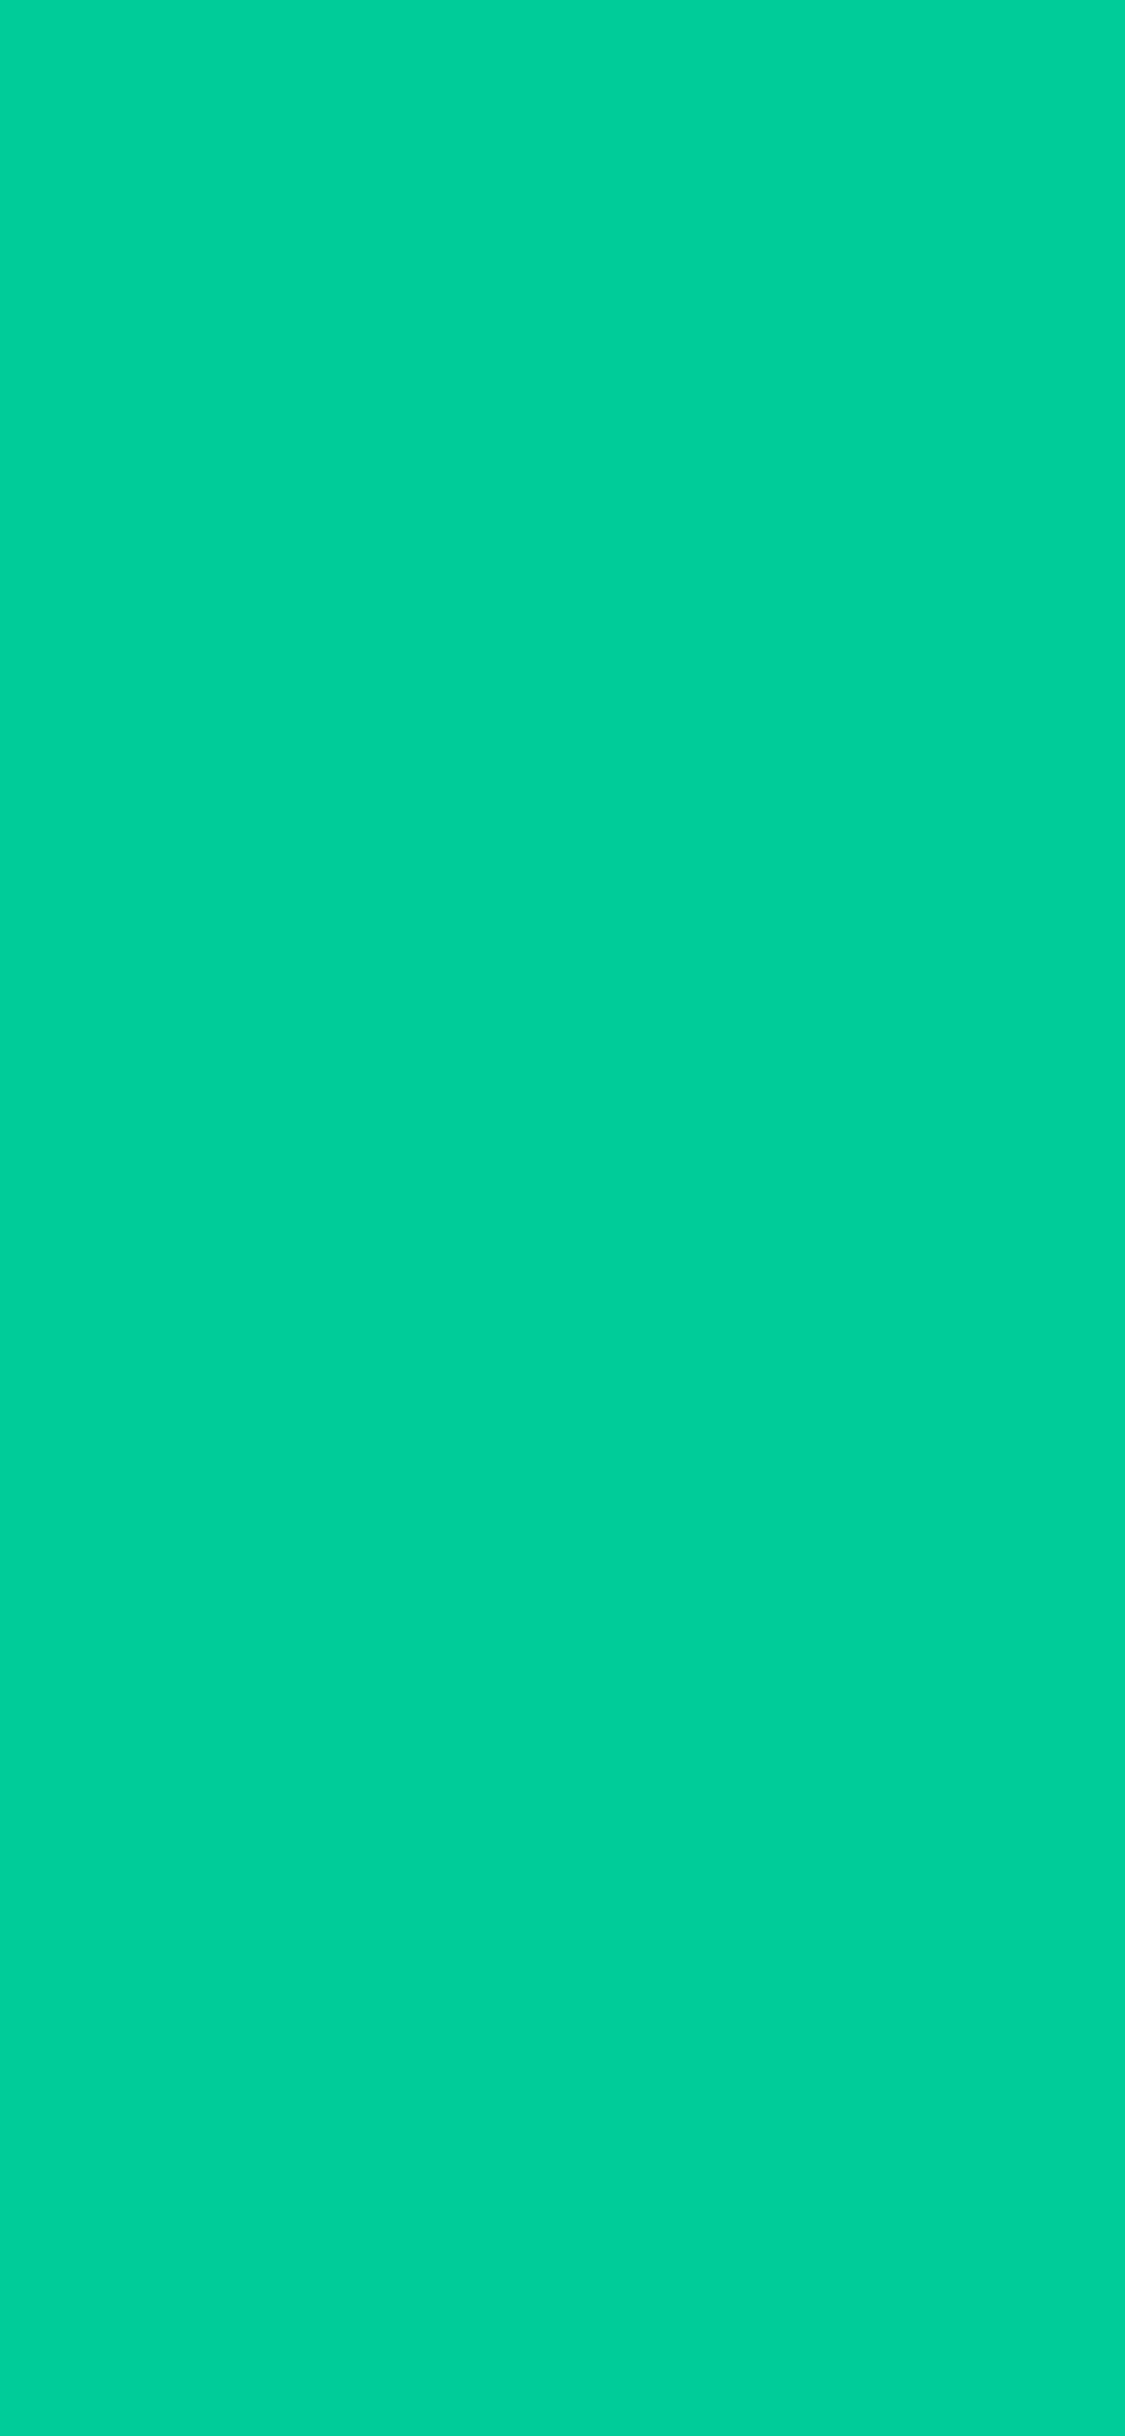 1125x2436 Caribbean Green Solid Color Background